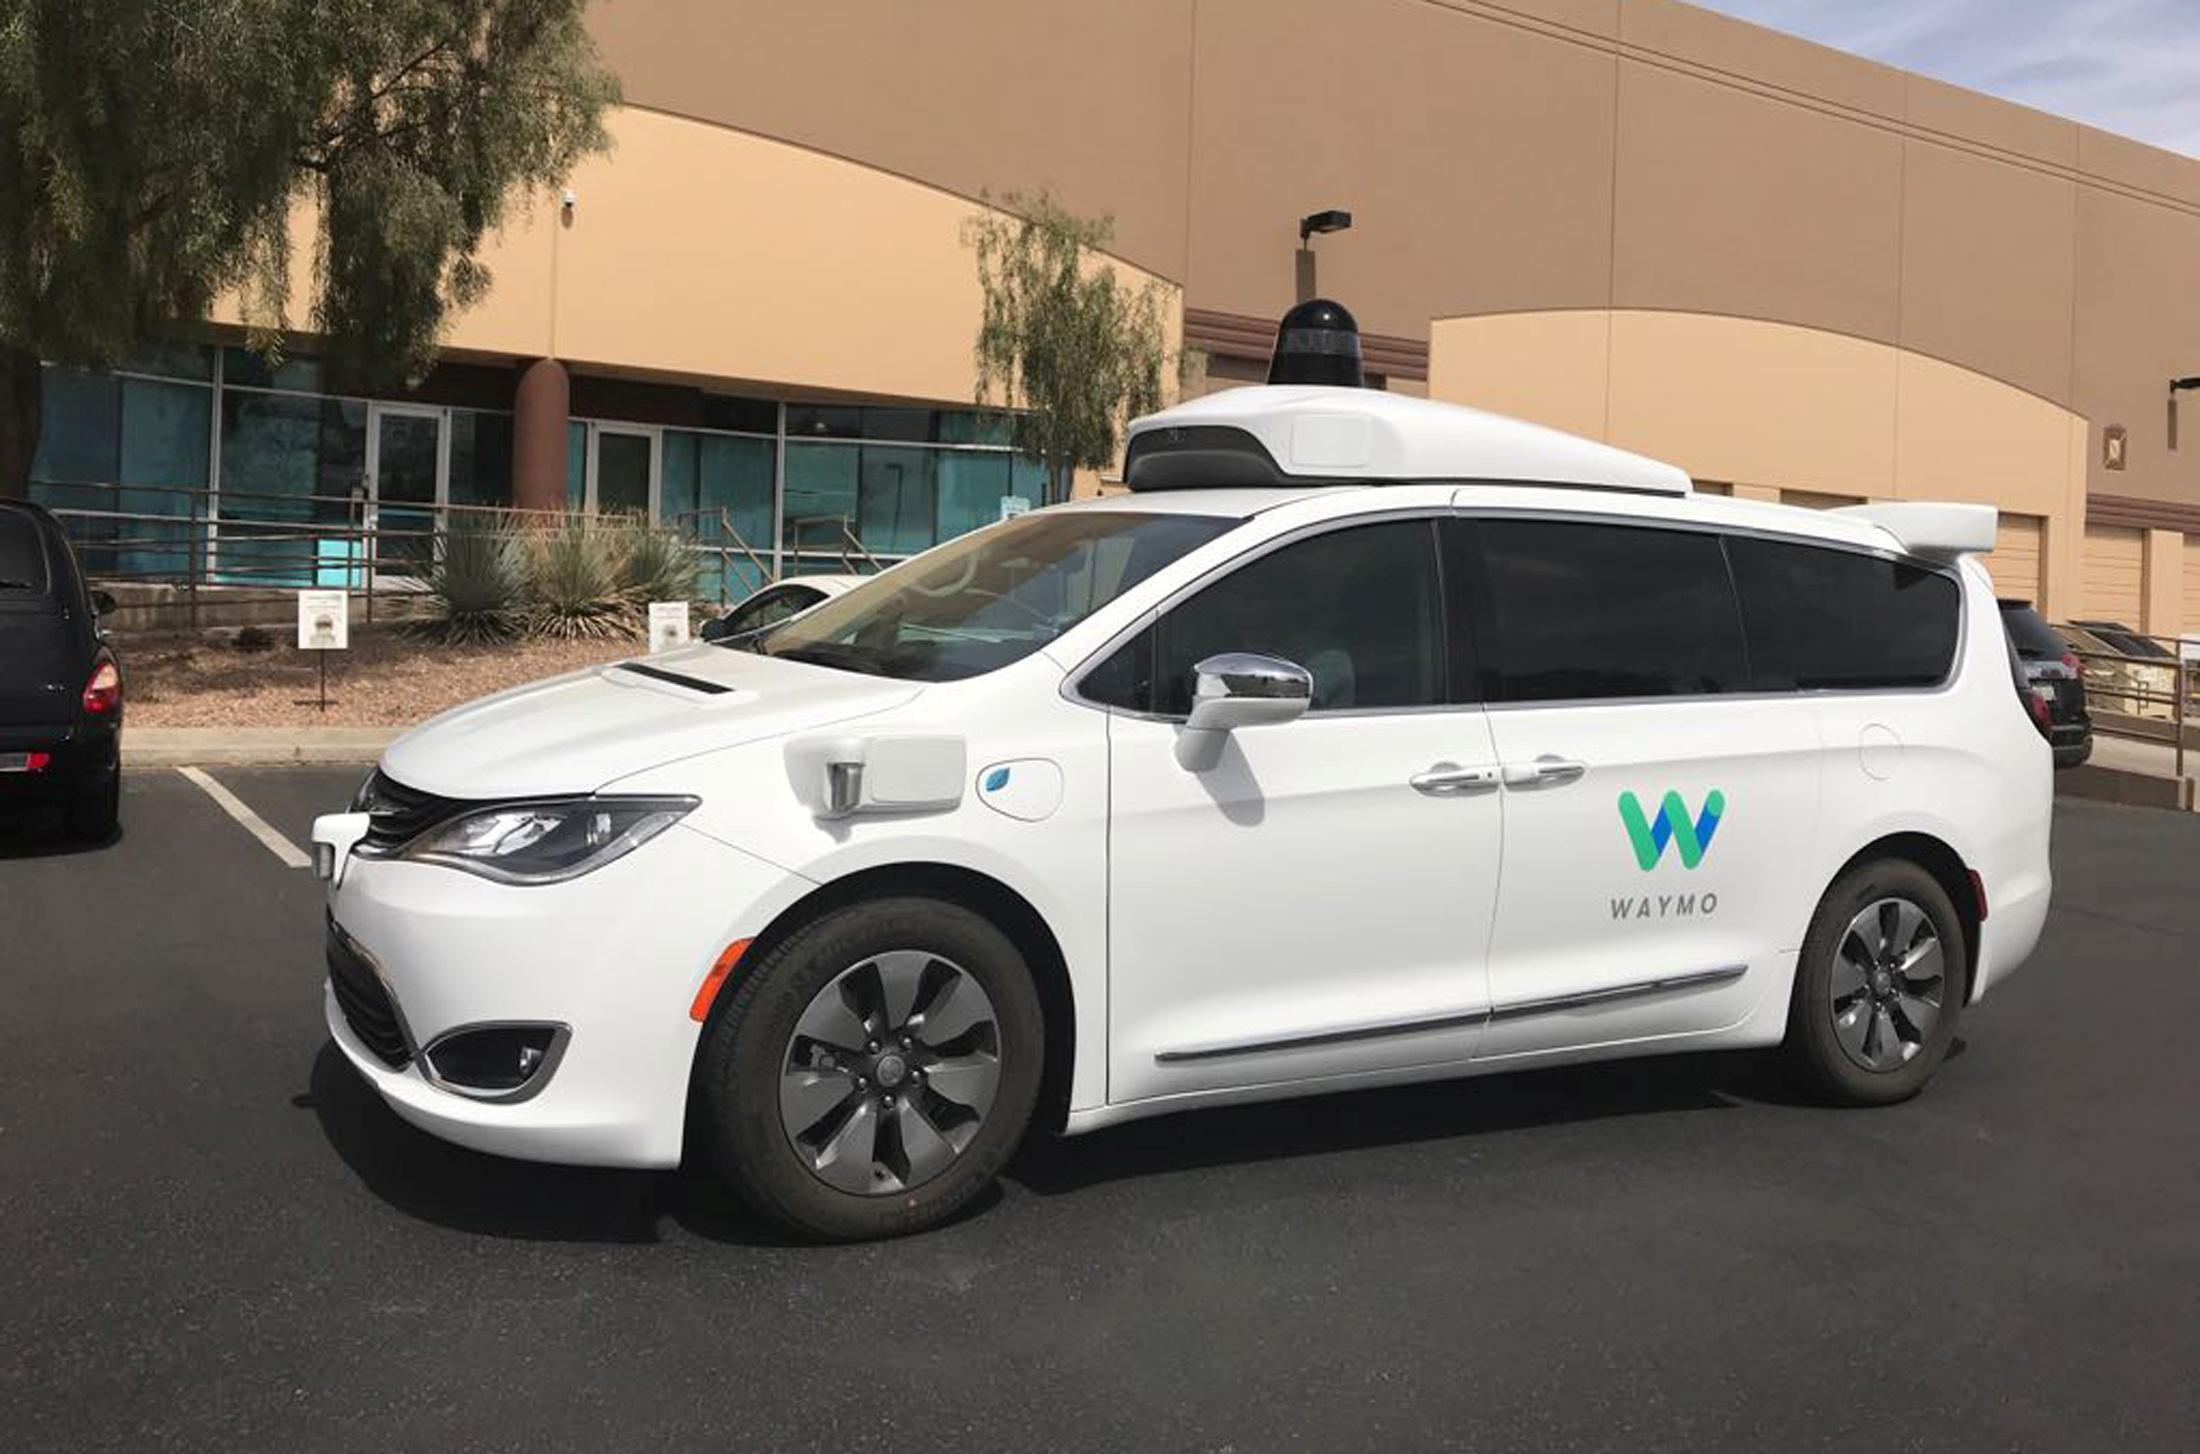 California proposes new rules for self-driving cars to pick up...